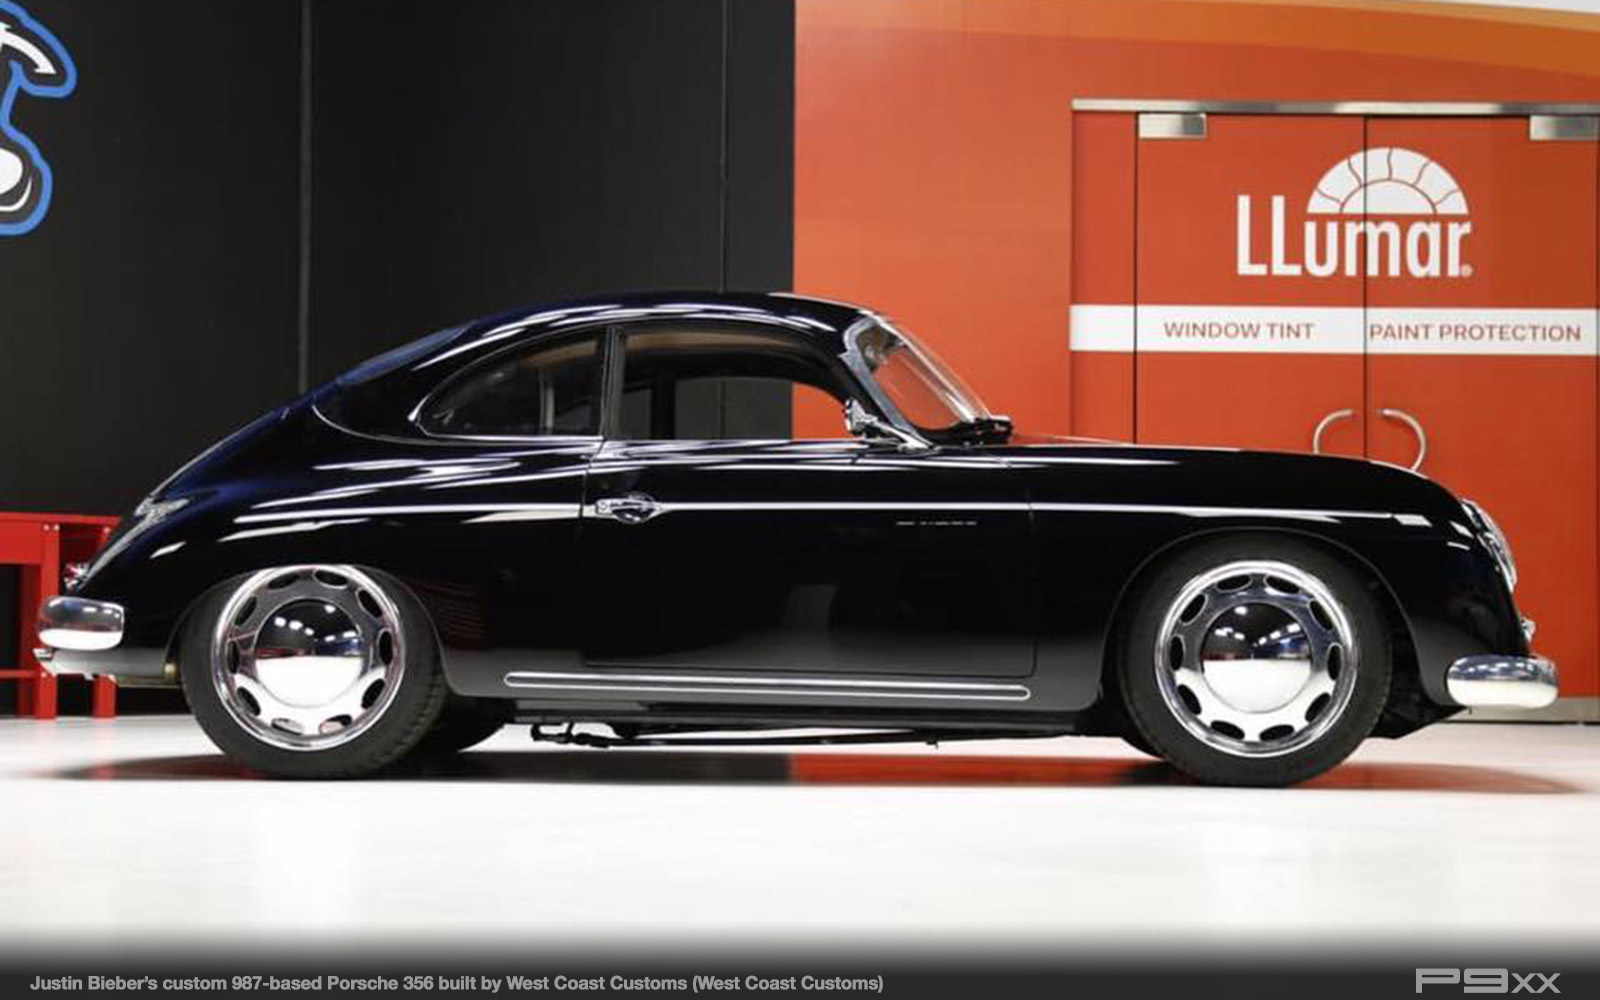 West Coast Customs Builds 356 Body 987 2 Likely For Justin Bieber P9xx